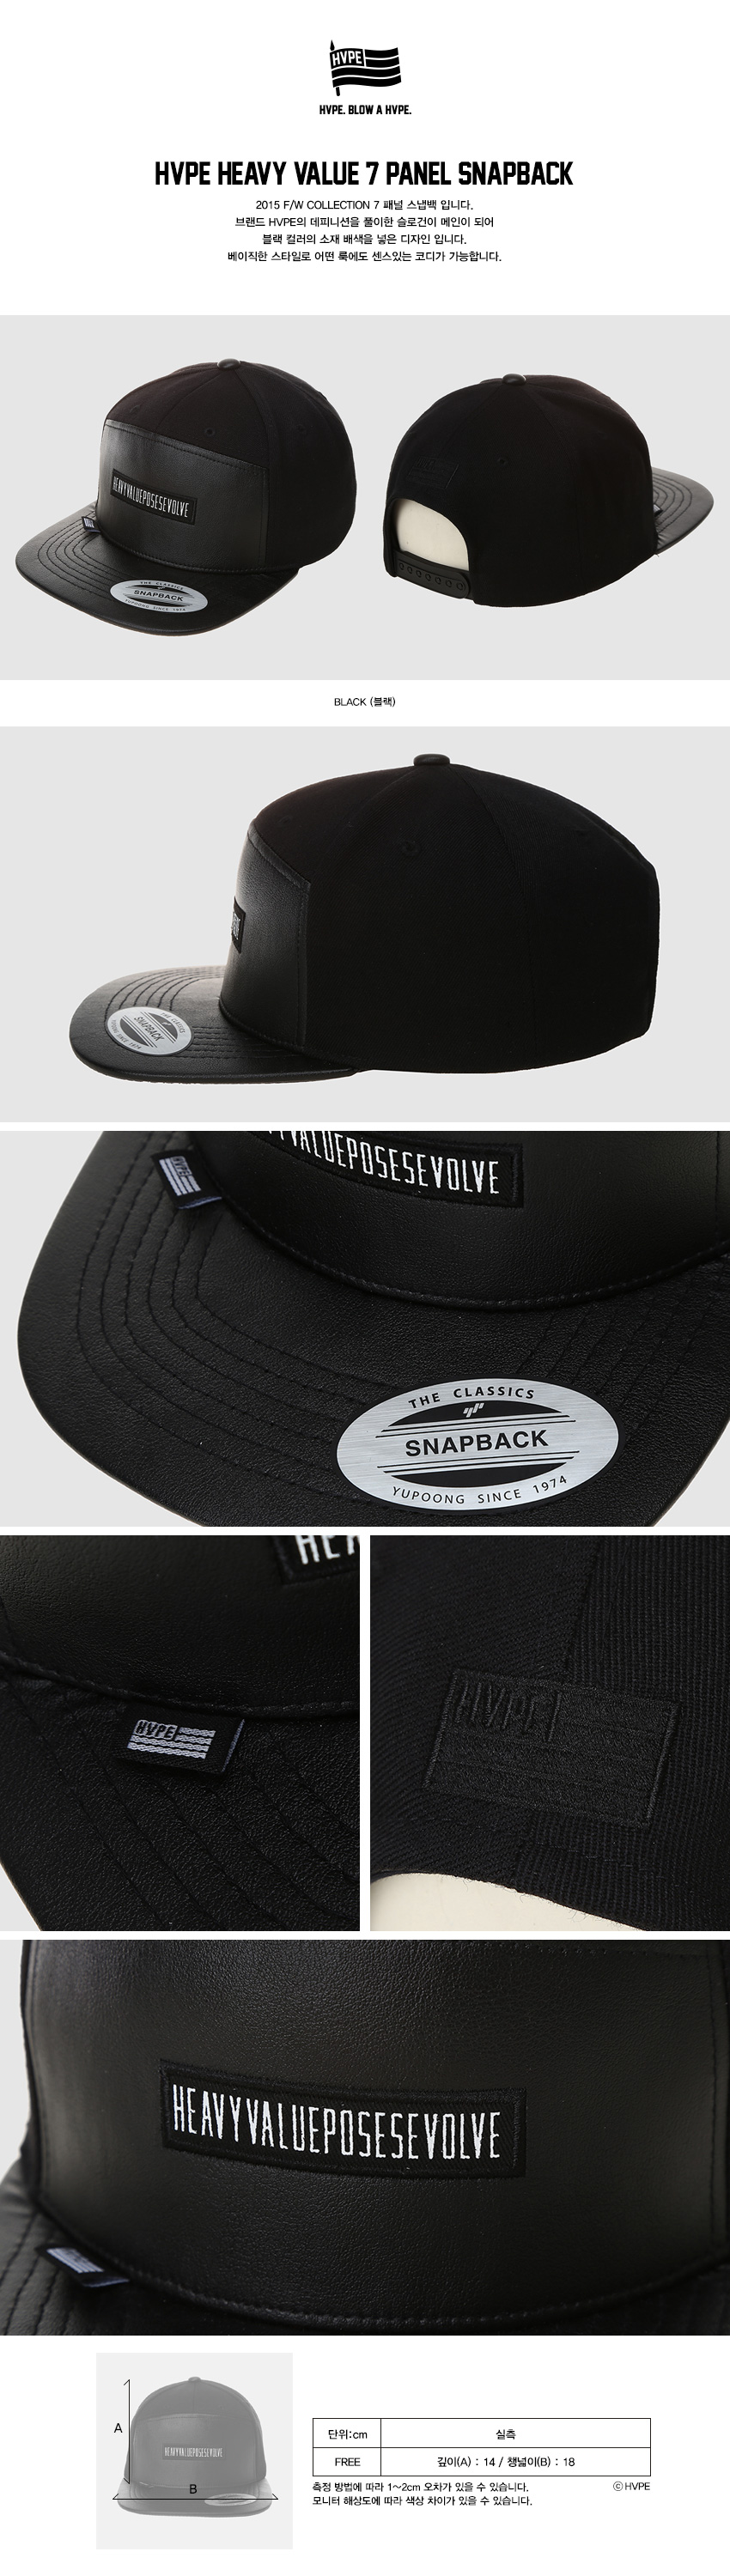 [ HVPE ] [HVPE] HEAVY VALUE SNAPBACK